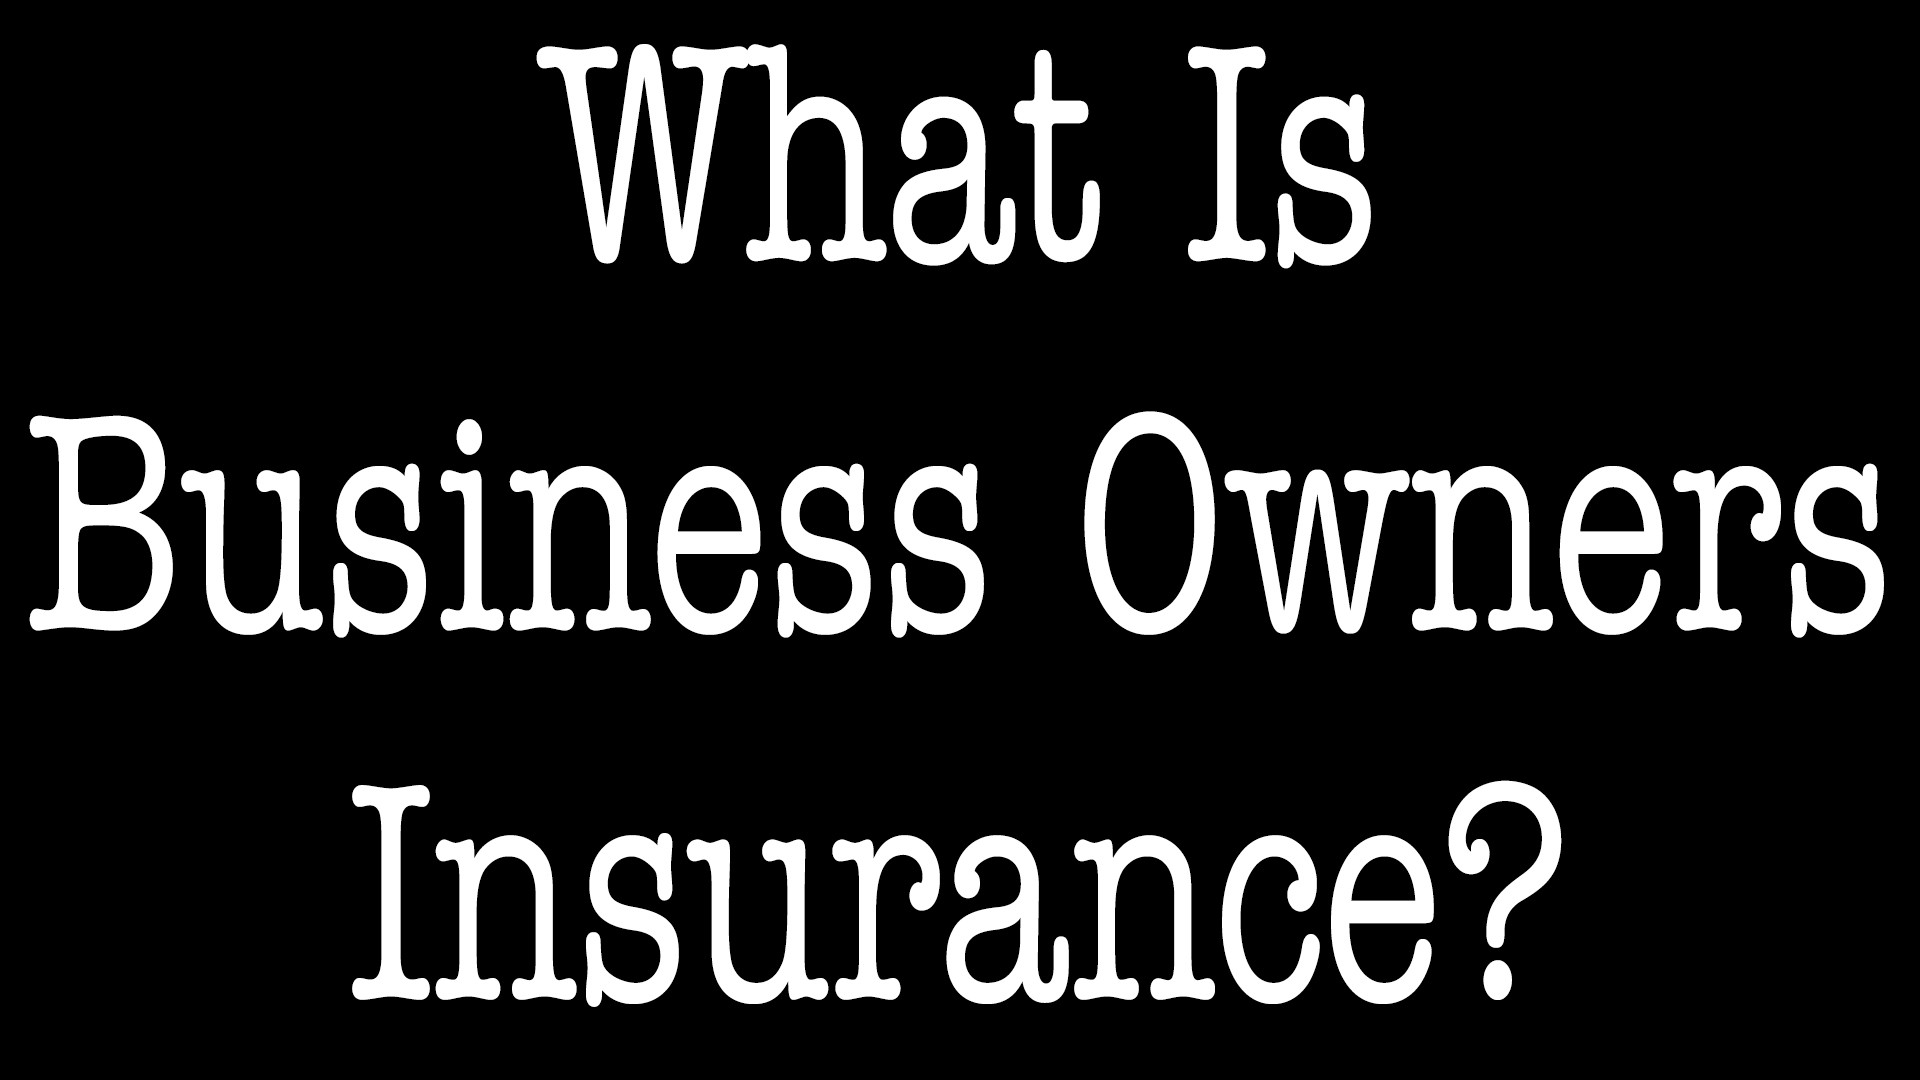 What Is Business Owners Insurance - ALLCHOICE Insurance - North Carolina